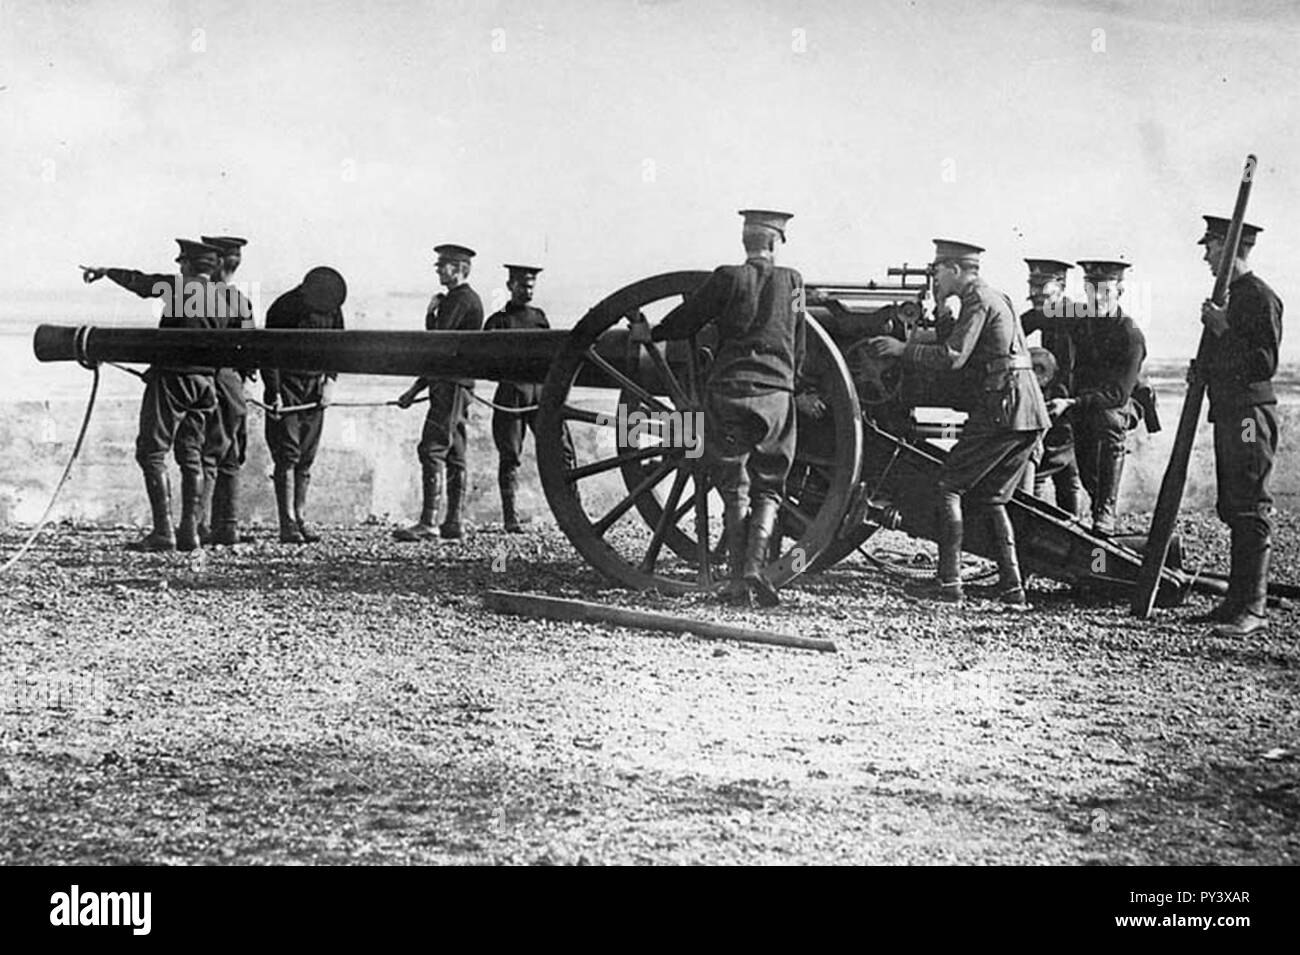 Canadian 4.7 inch gun 1915 A022703. - Stock Image